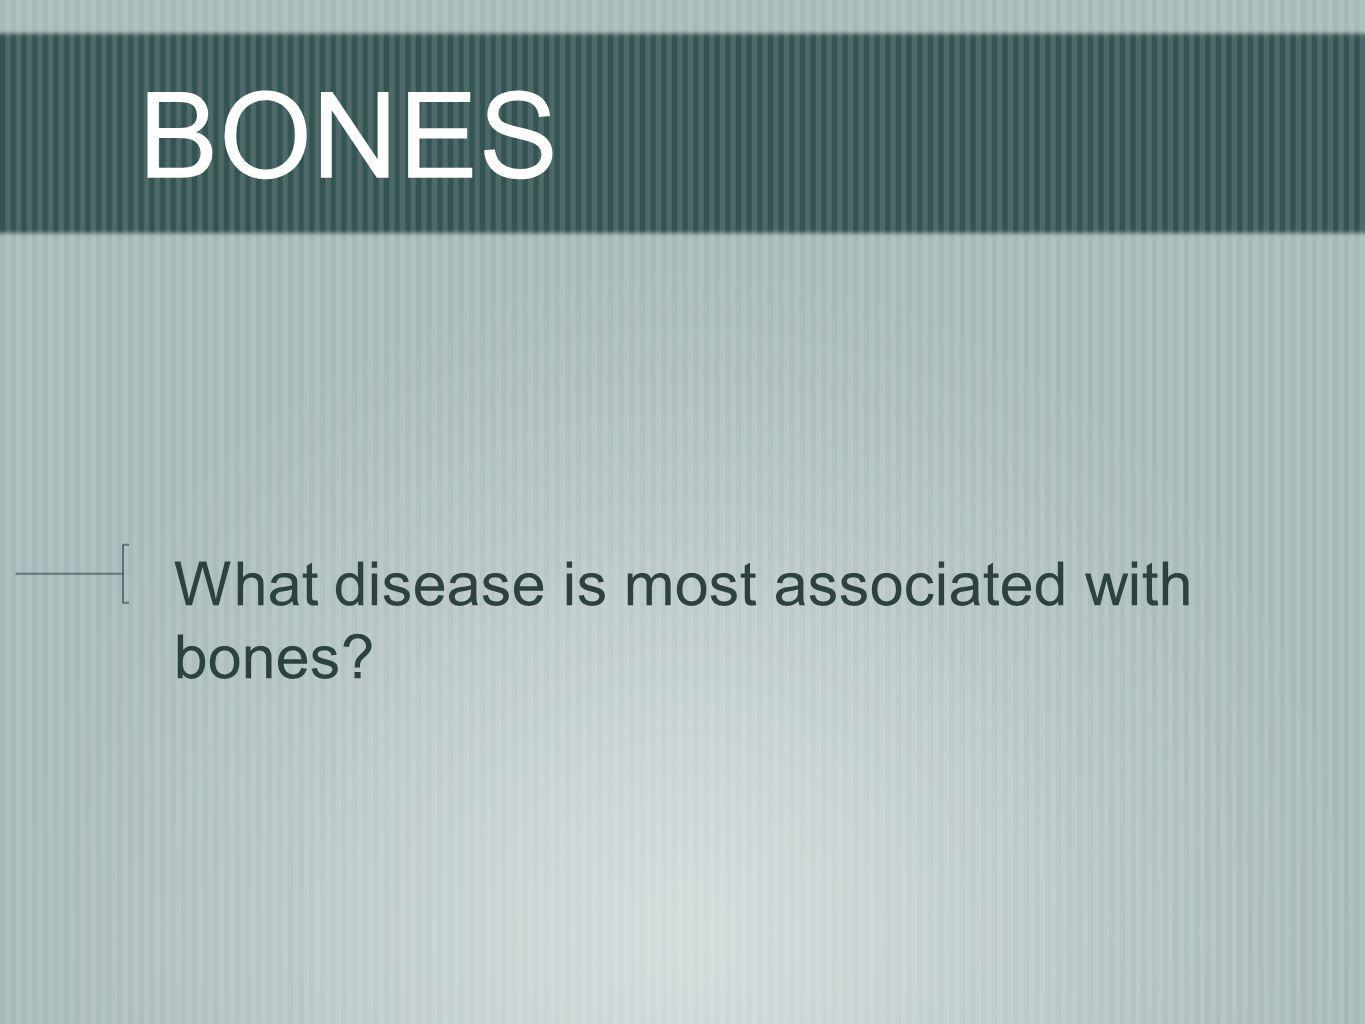 BONES What disease is most associated with bones